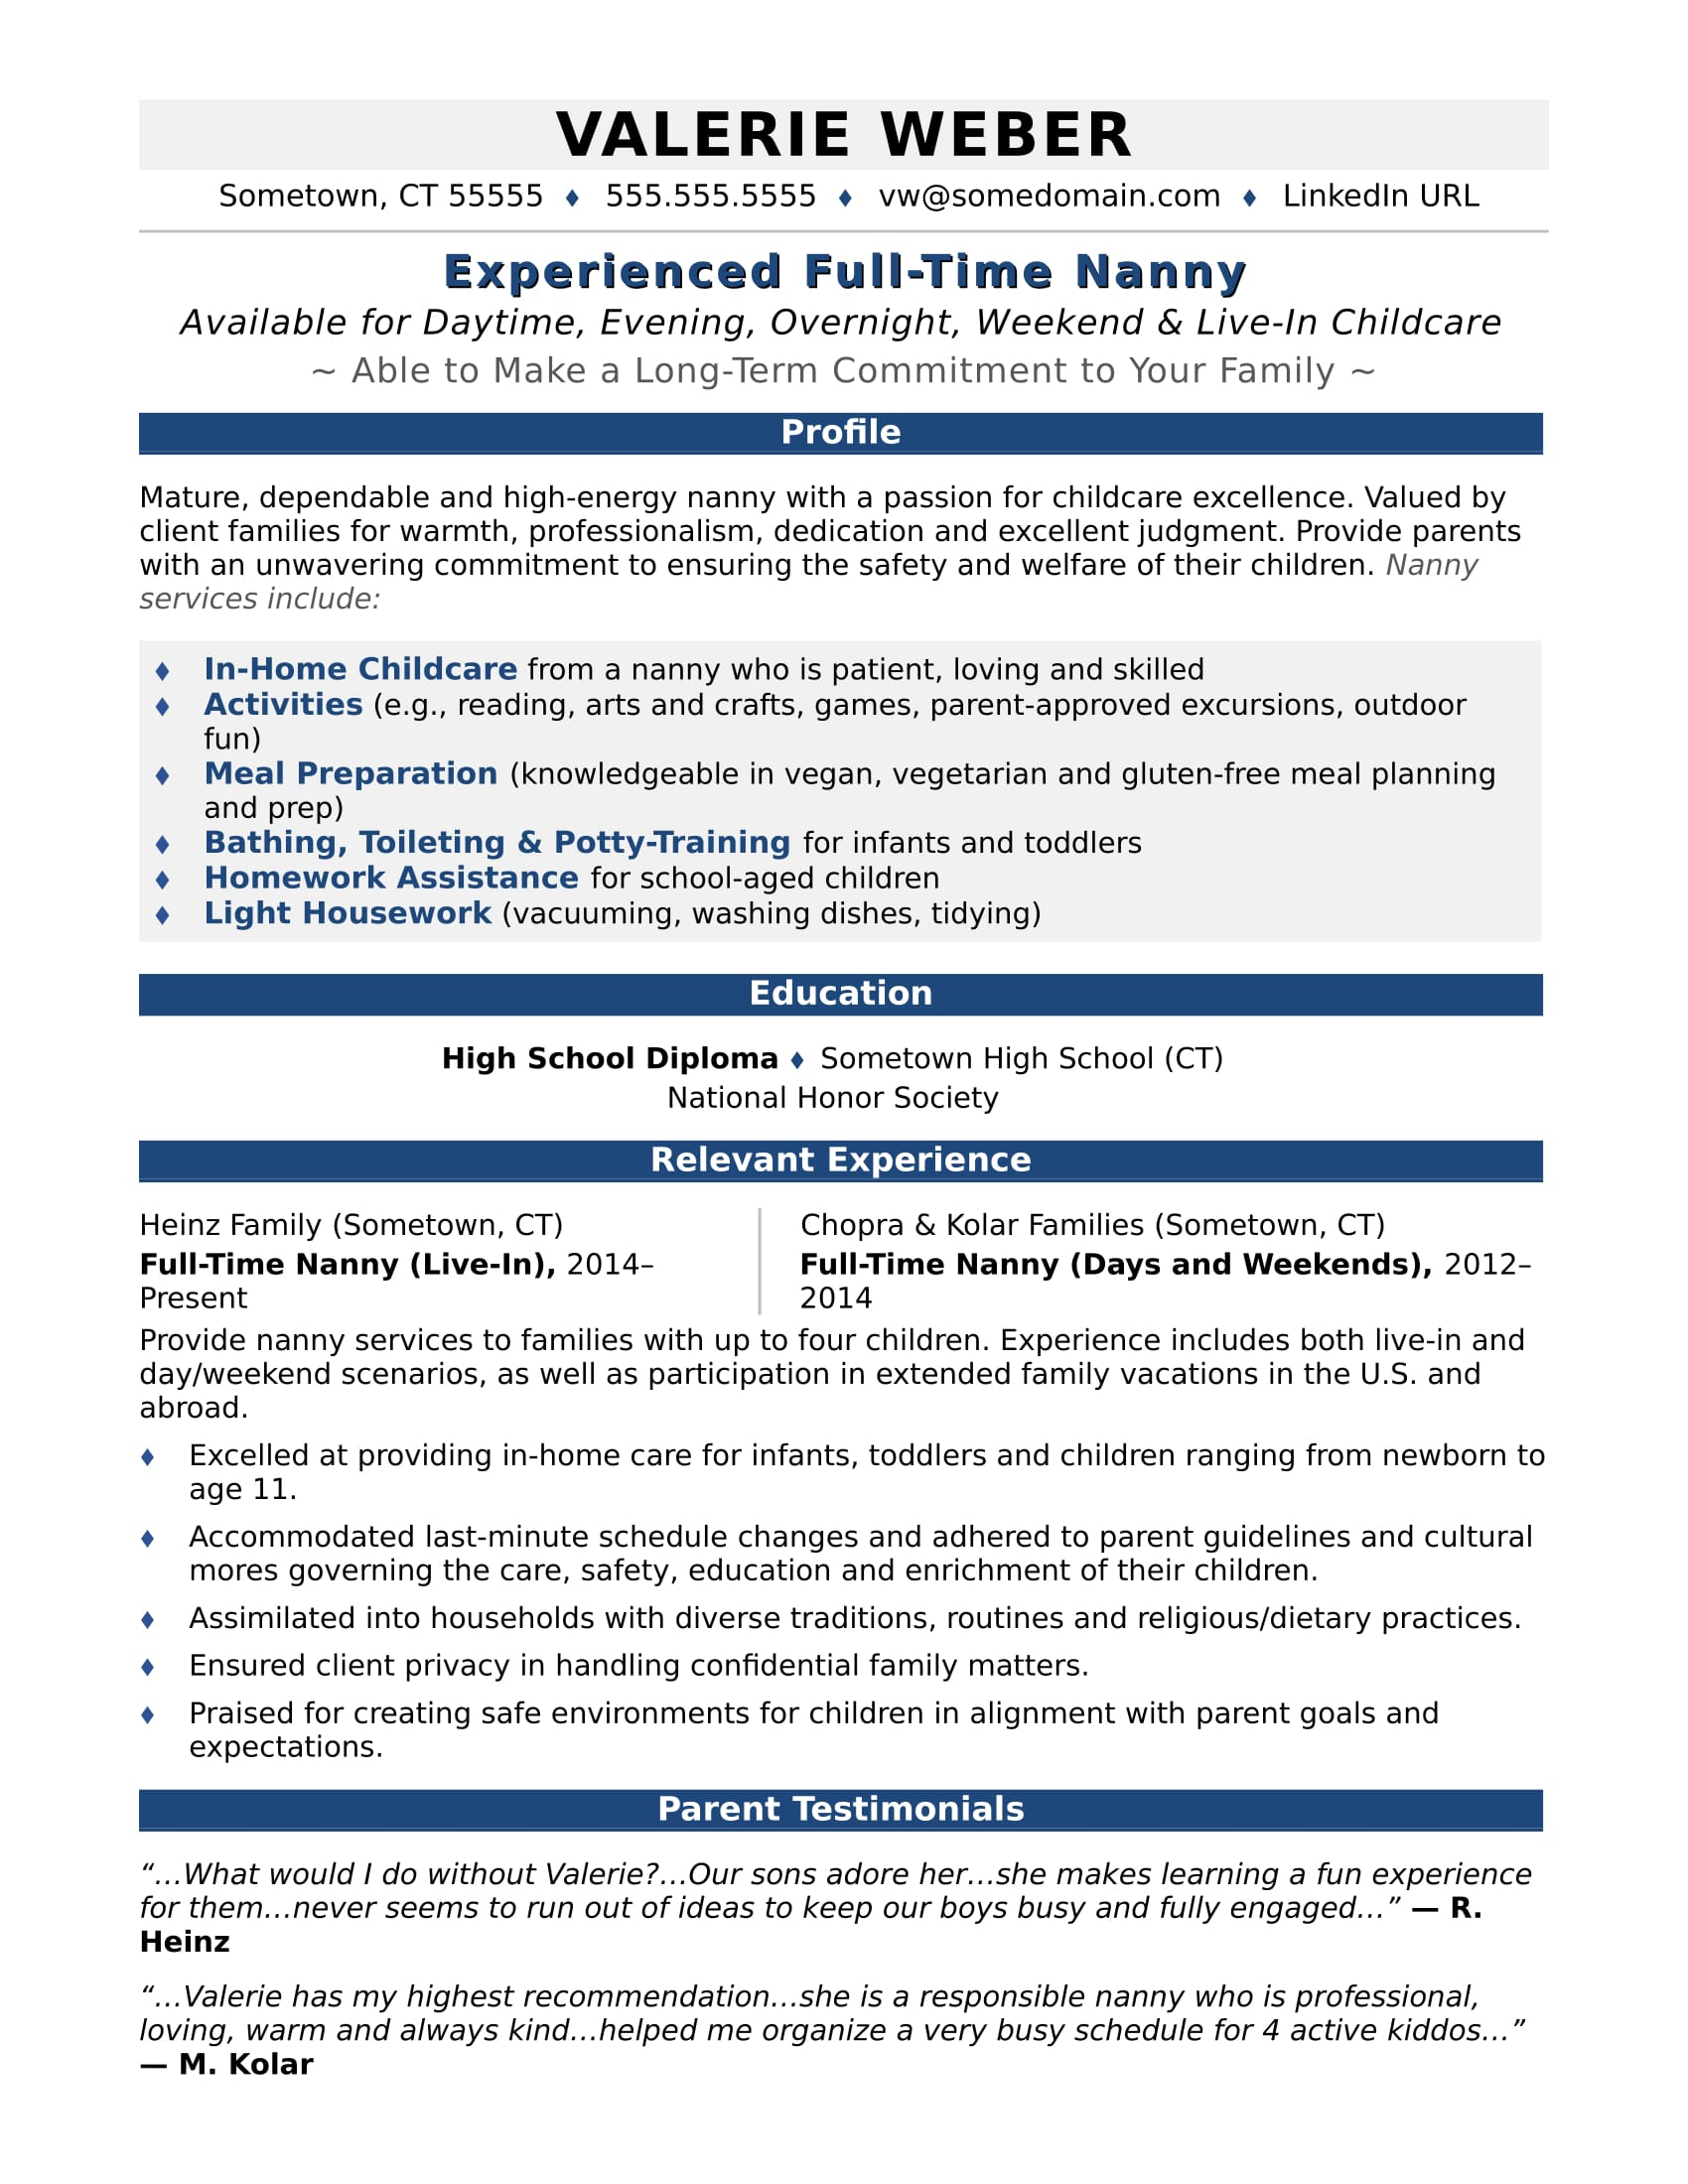 nanny resume sample monster another name for ups driver helper description ticket agent Resume Another Name For Resume